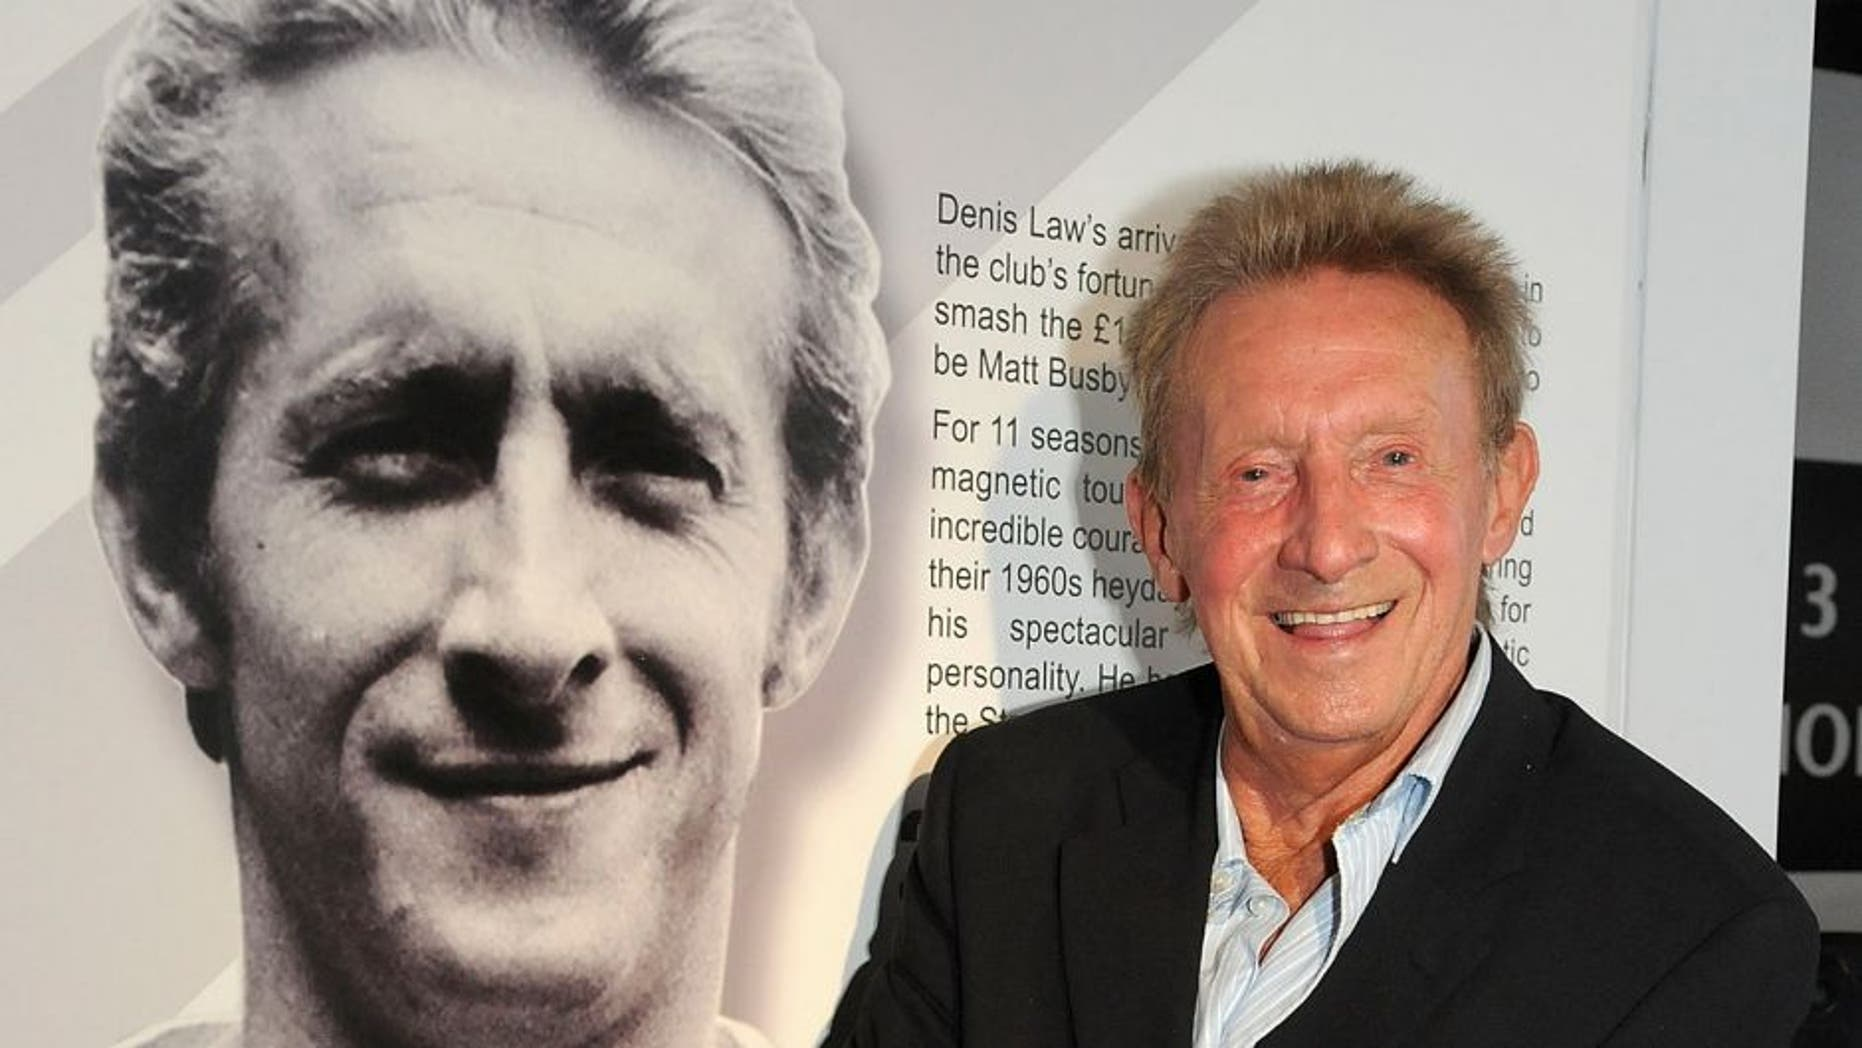 MANCHESTER, ENGLAND - JULY 05: Manchester United legend Denis Law opens an exhibition to mark the 50th anniversary of him signing for Manchester United at the club museum at Old Trafford on July 5, 2012 in Manchester, England. (Photo by Ian Cartwright/Man Utd via Getty Images)